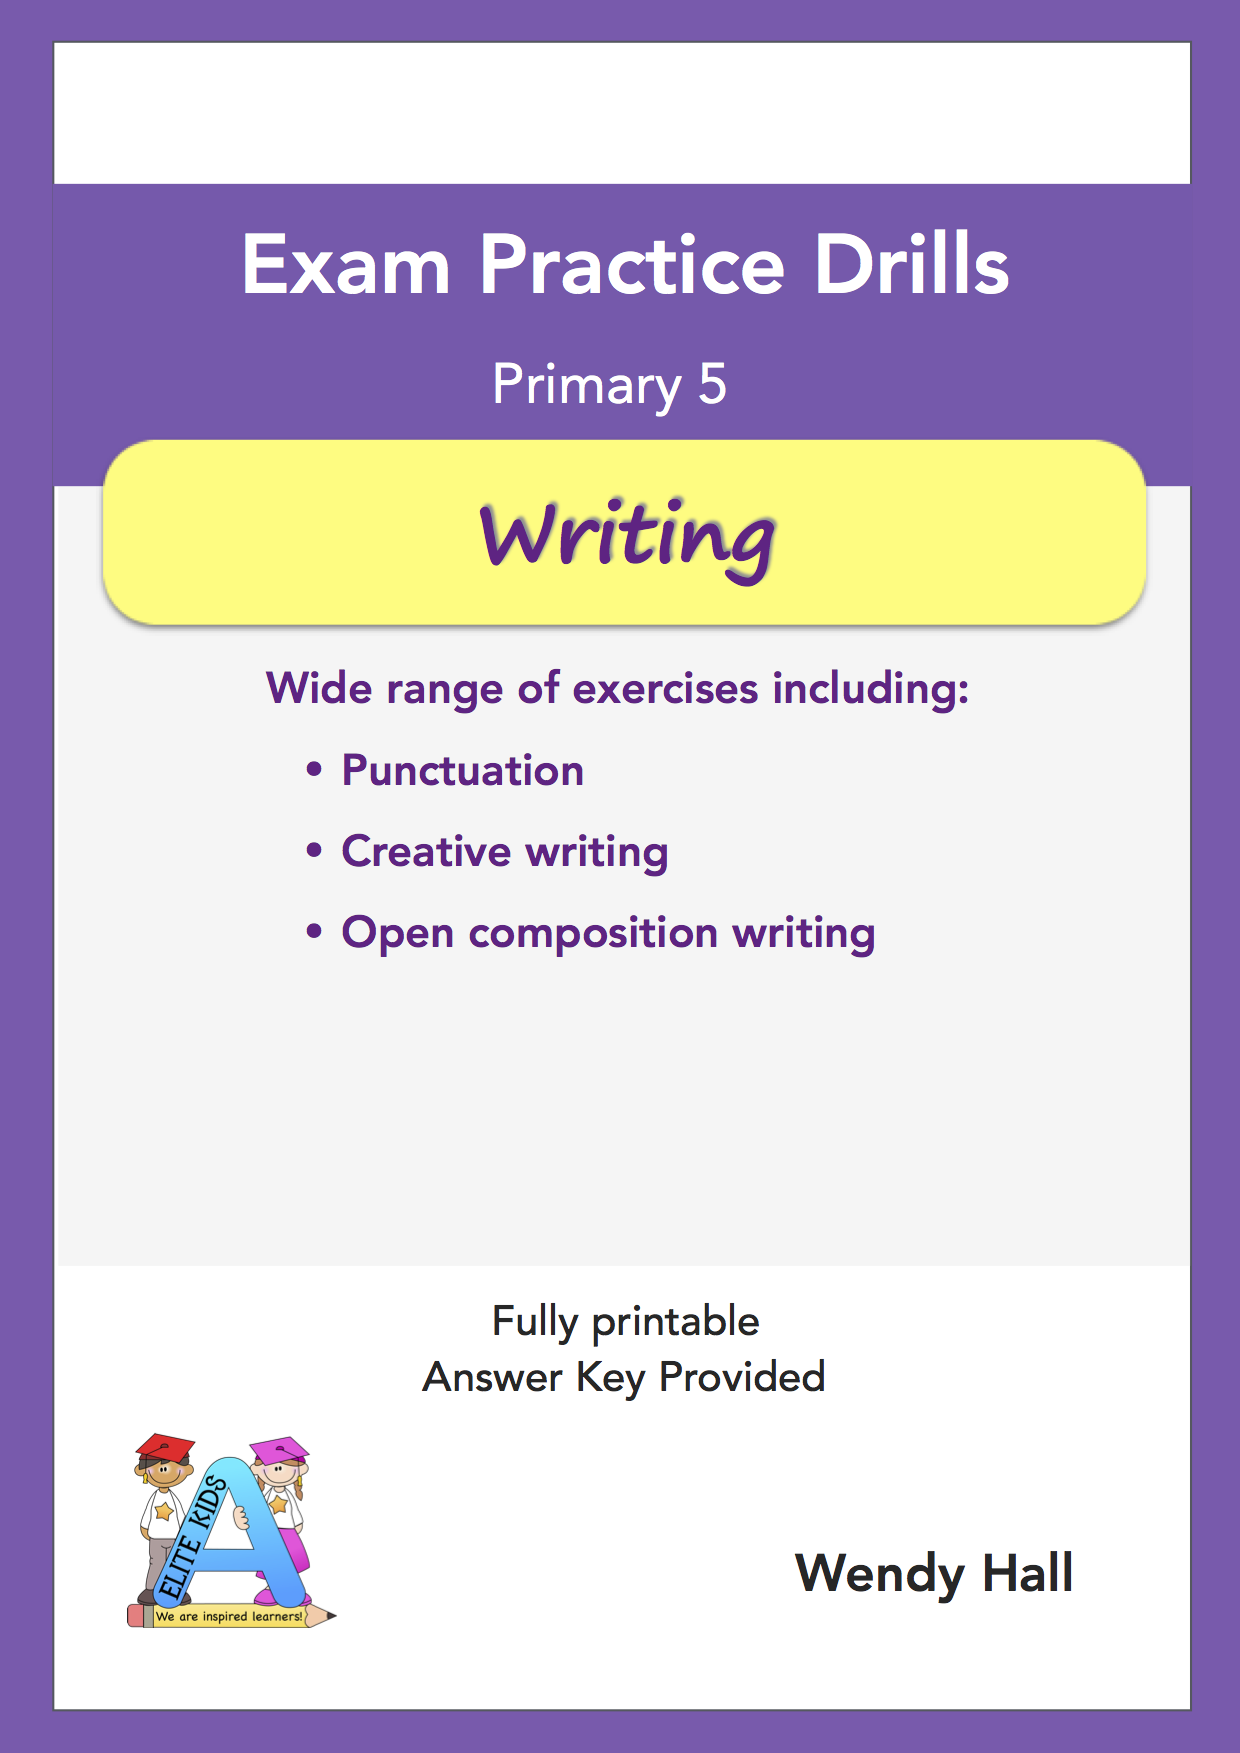 Elite Kids | Exam Practice Drills - Writing - Primary 5